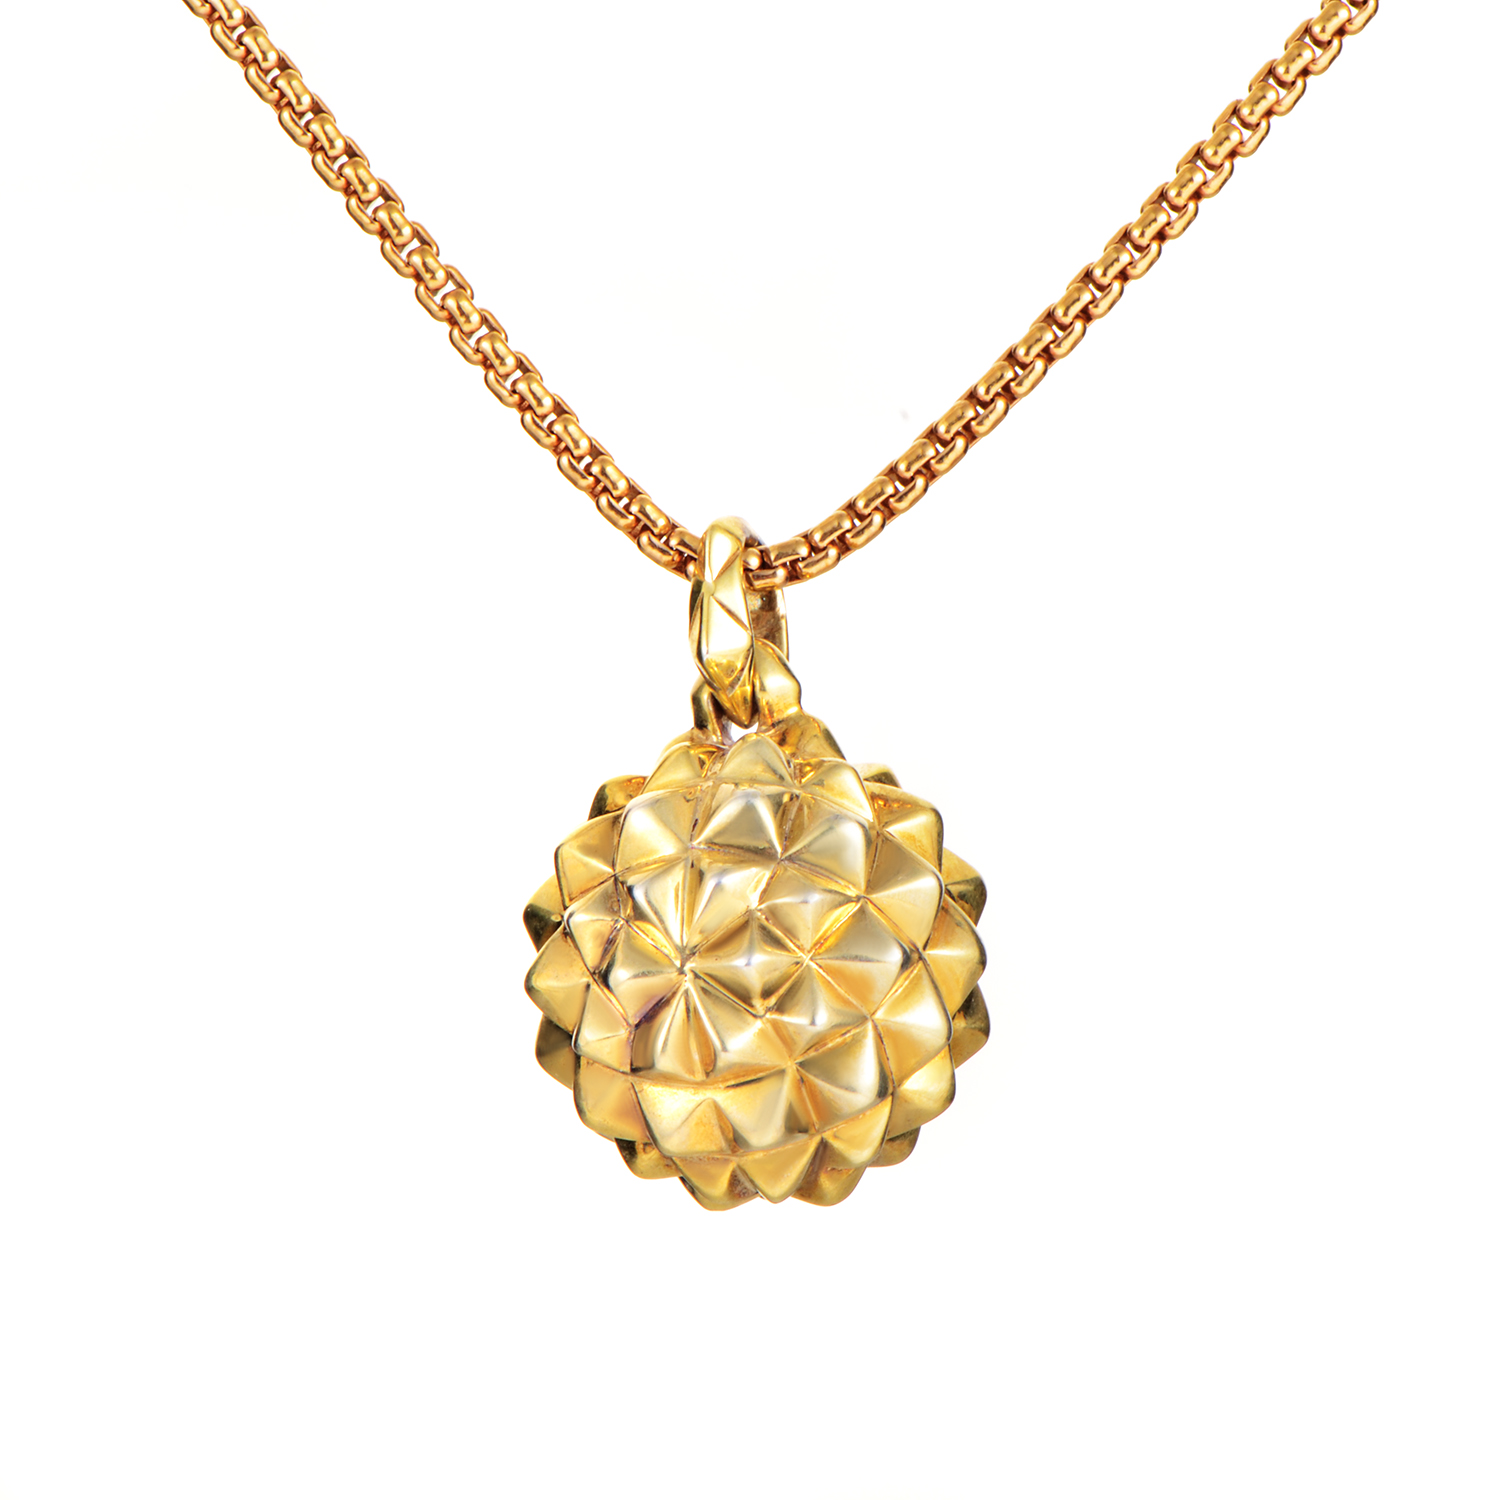 Superstud Gold Plated Sterling Silver Mace Pendant Necklace